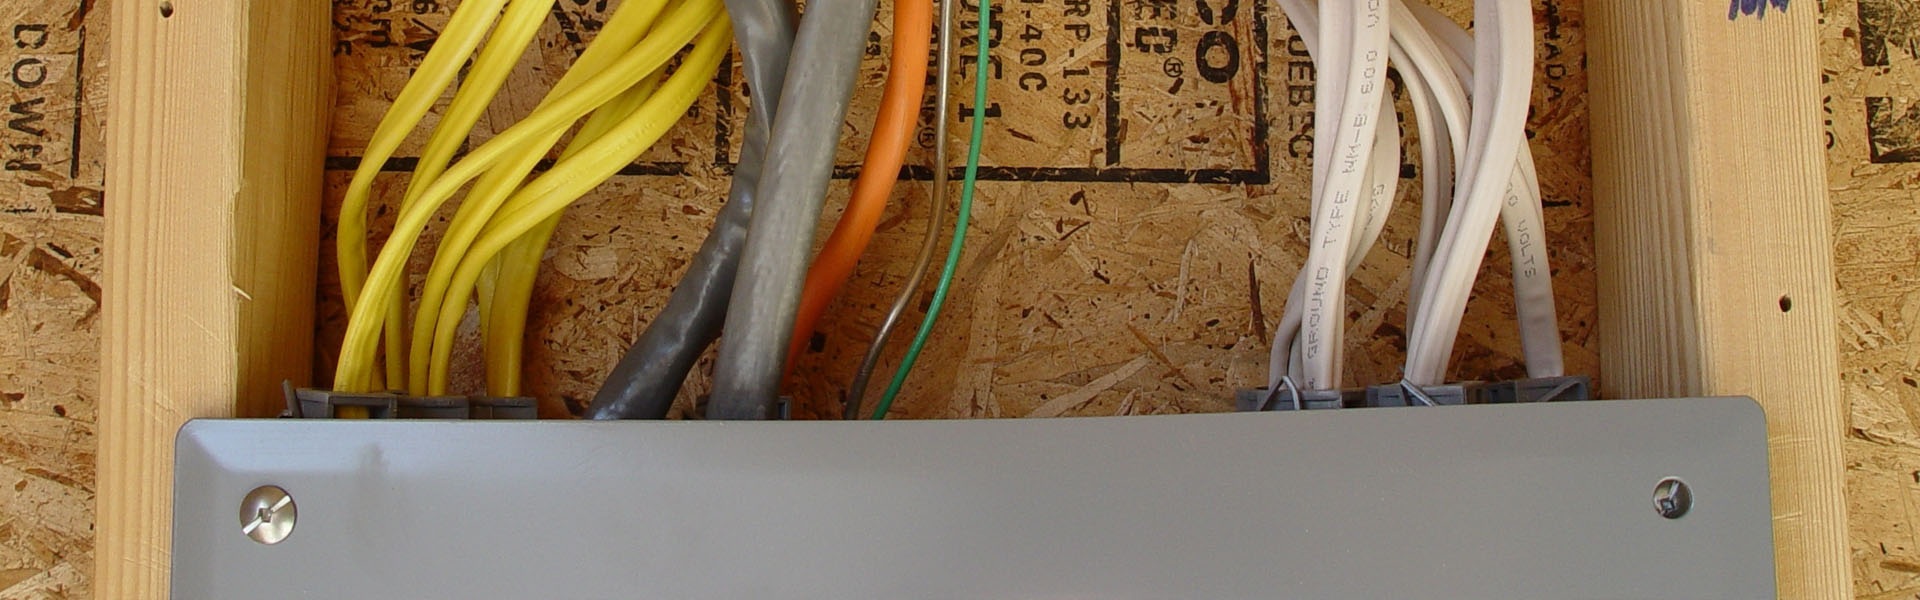 residential electrical upgrades